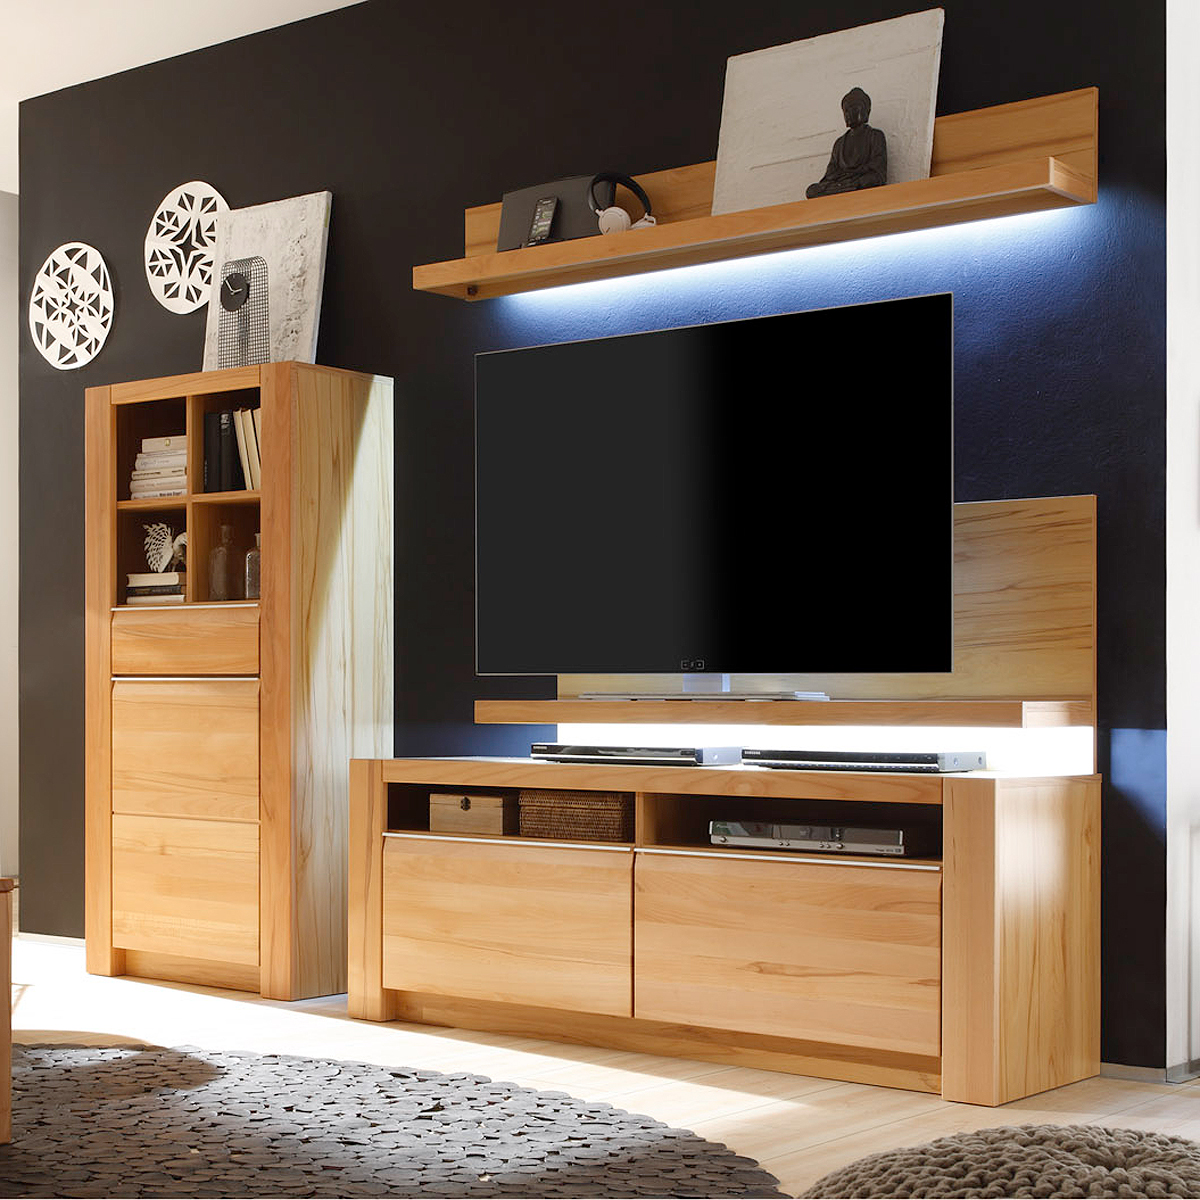 wohnwand vanille home design und m bel interieur inspiration. Black Bedroom Furniture Sets. Home Design Ideas